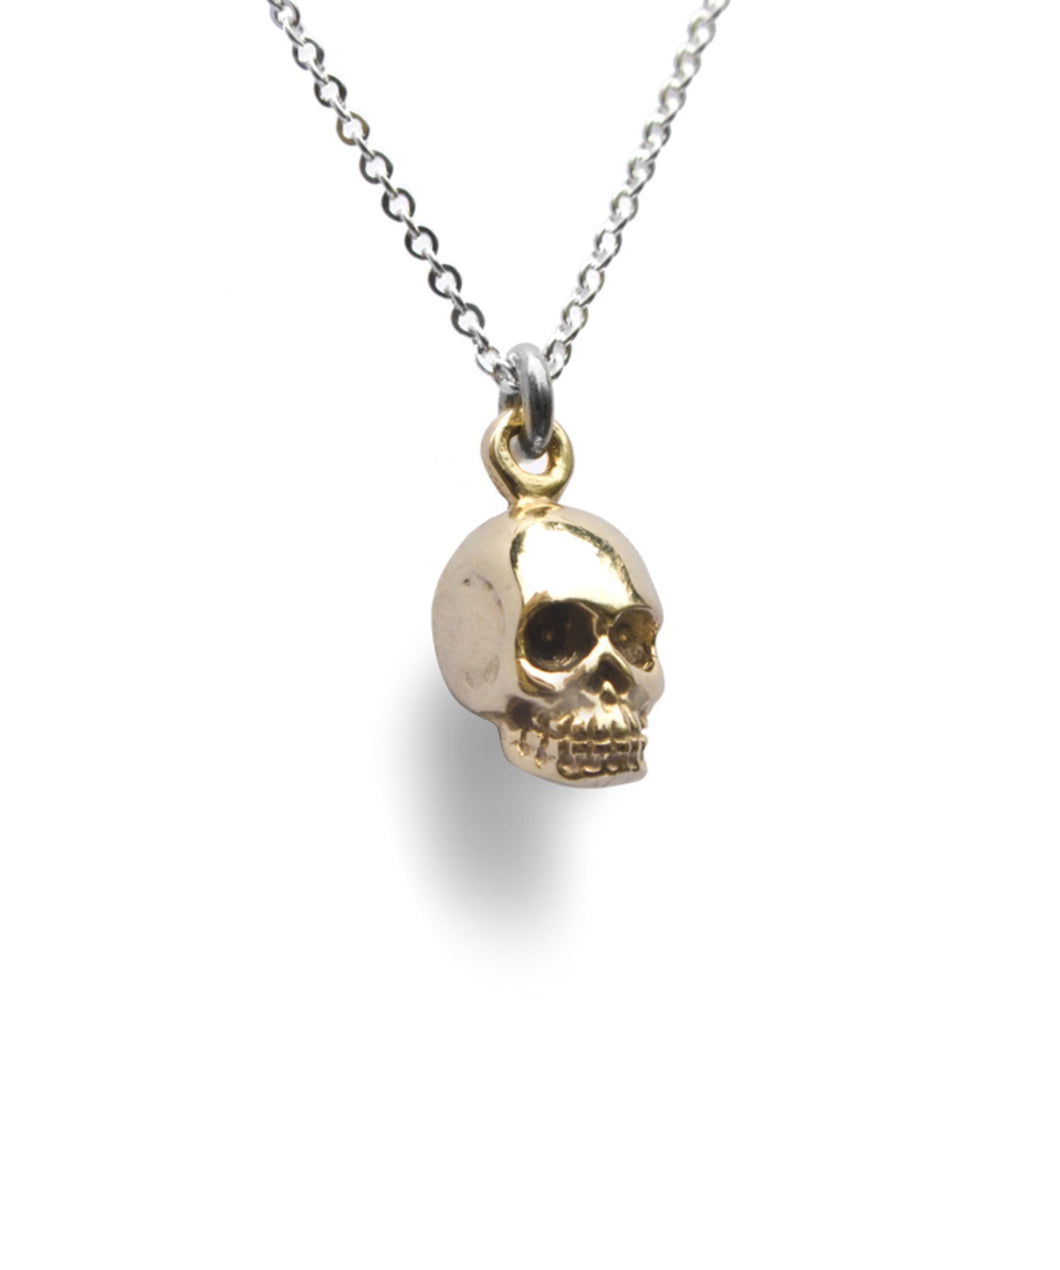 Momento Mori Necklace by Tales From The Earth